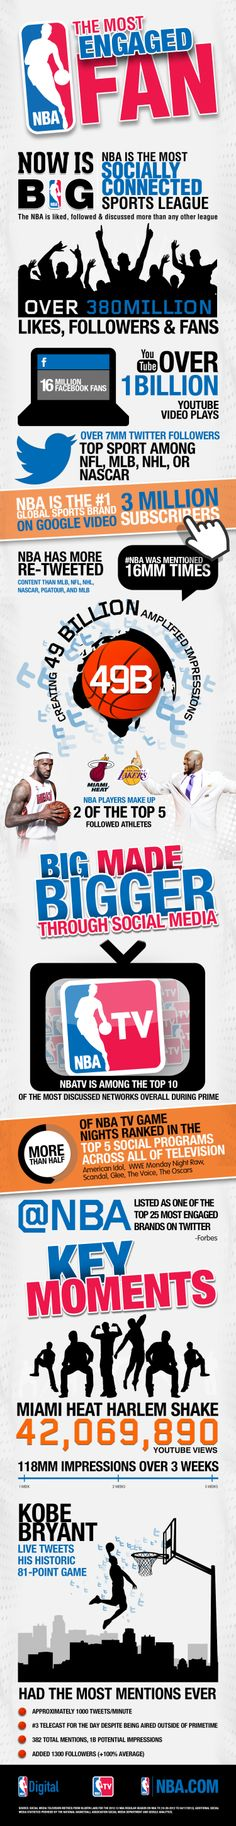 NBA is the most social sport